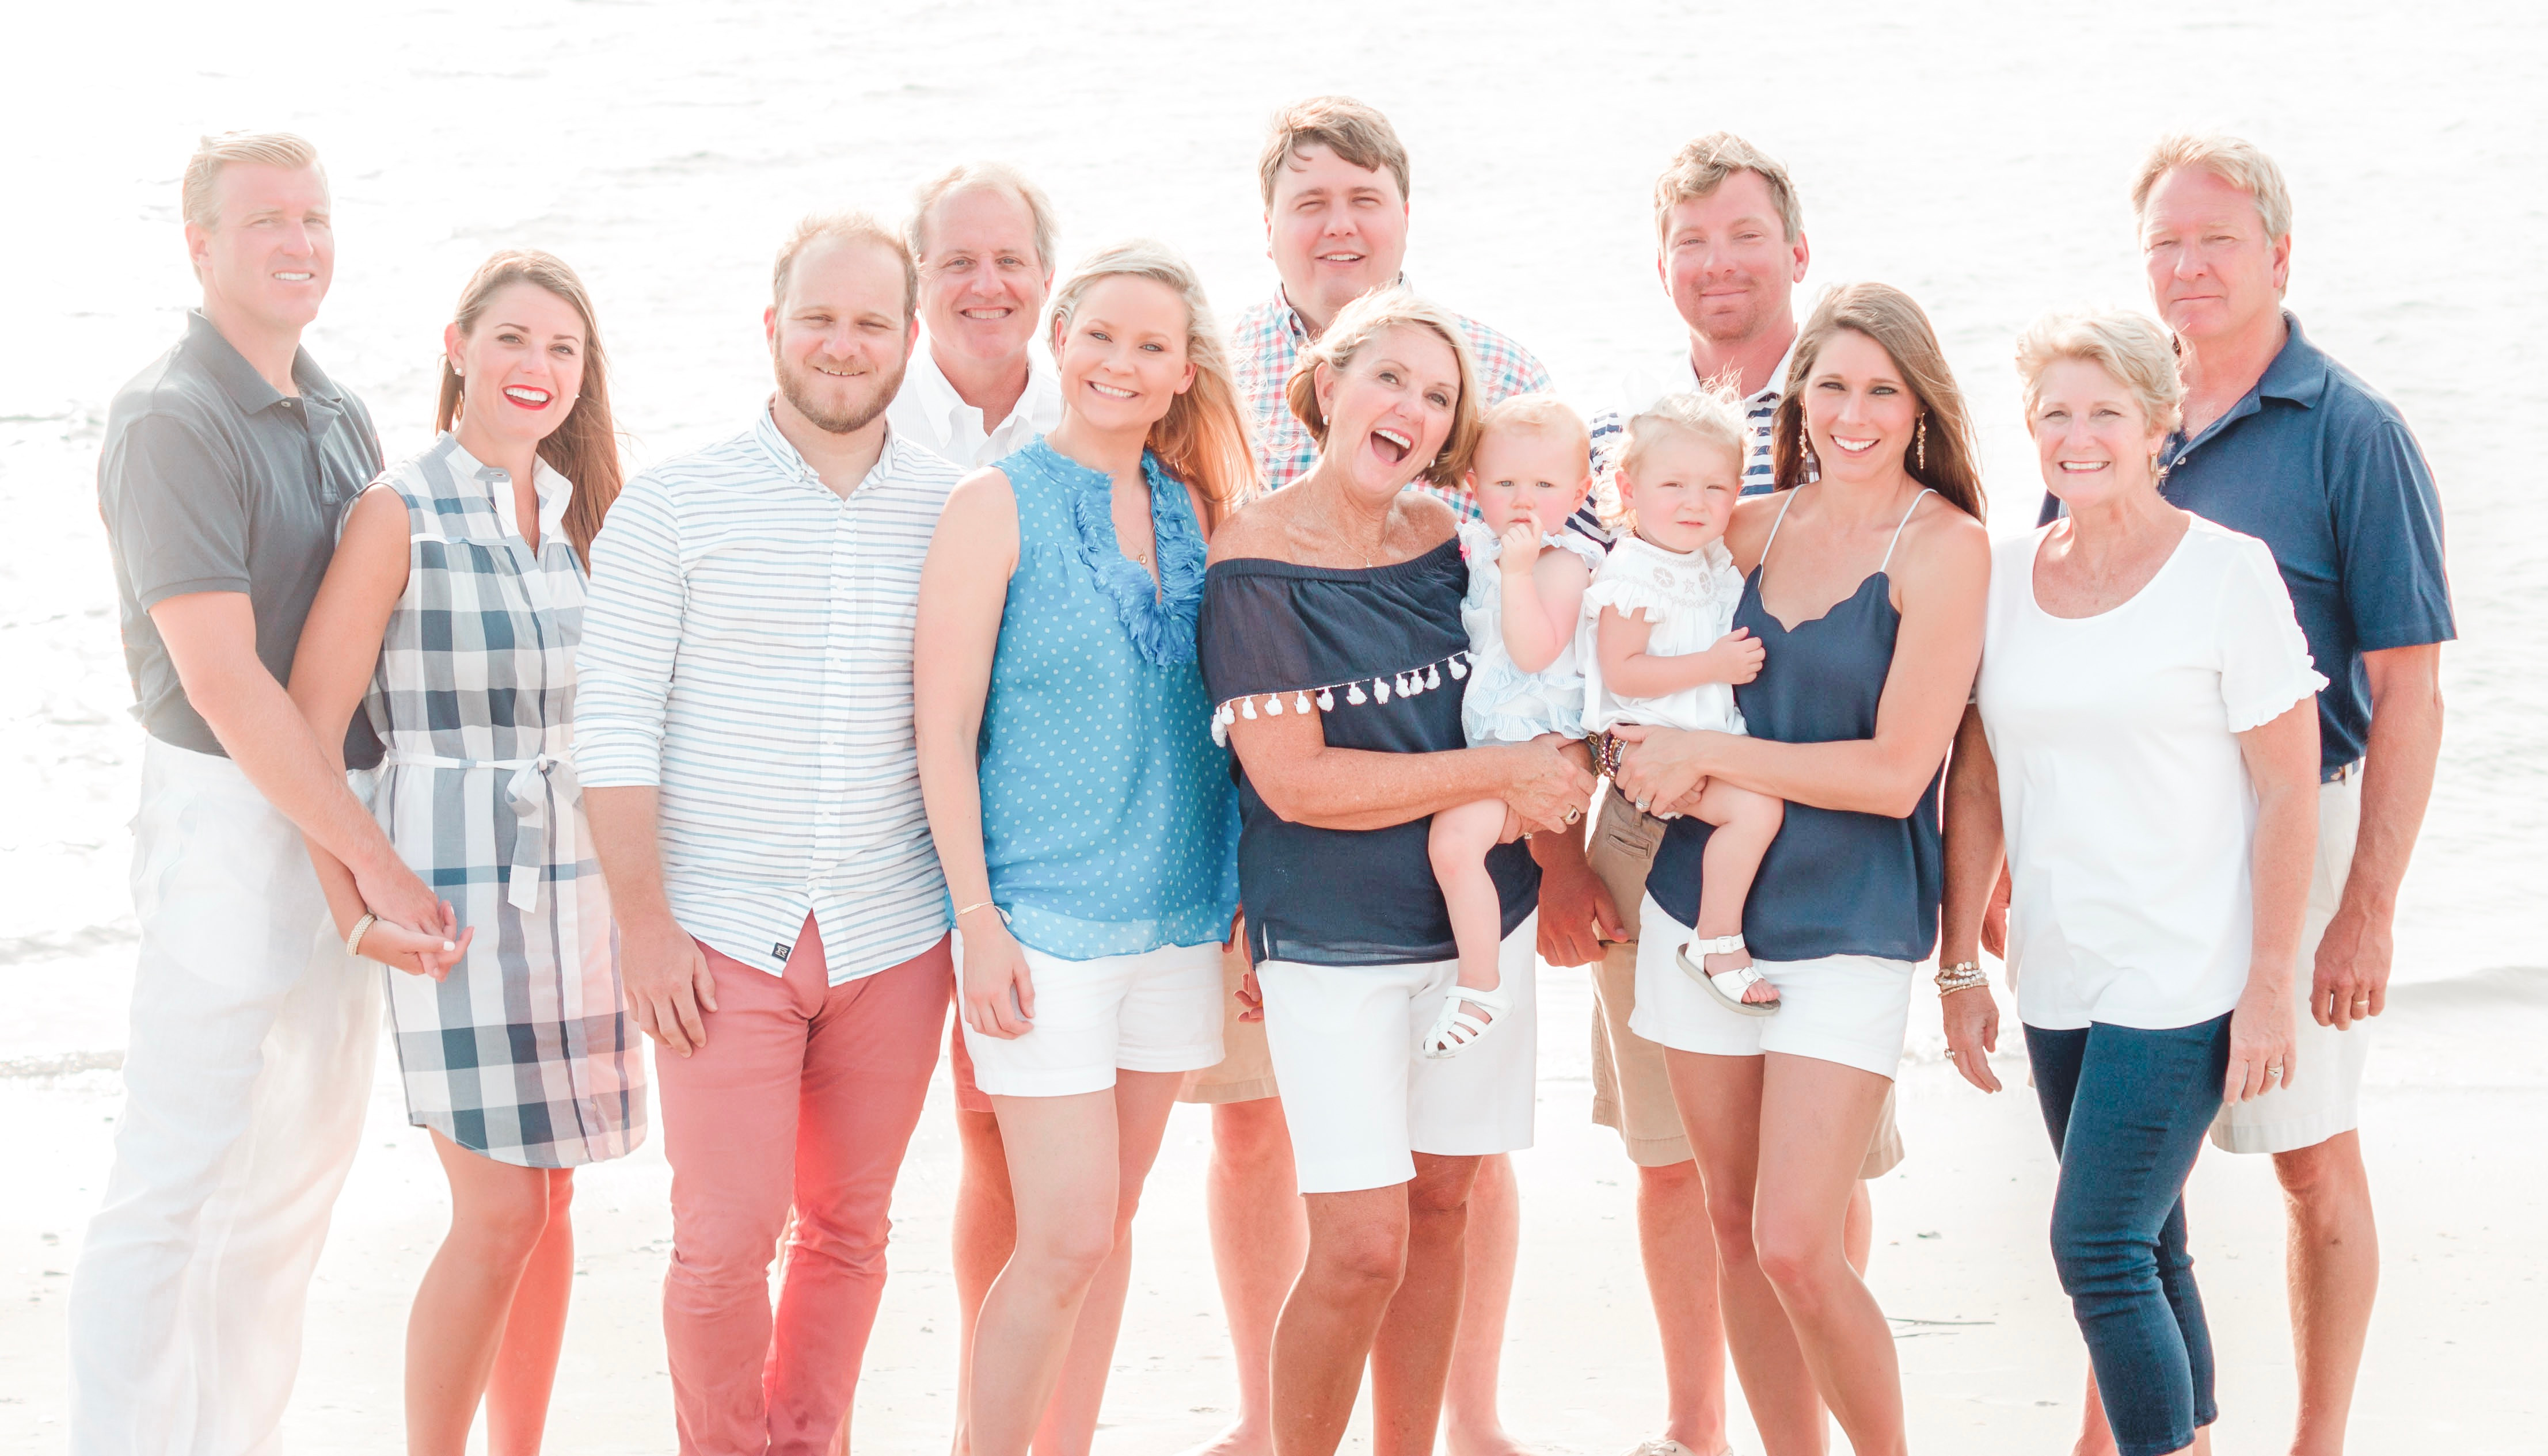 Family Session: 6 or less family members